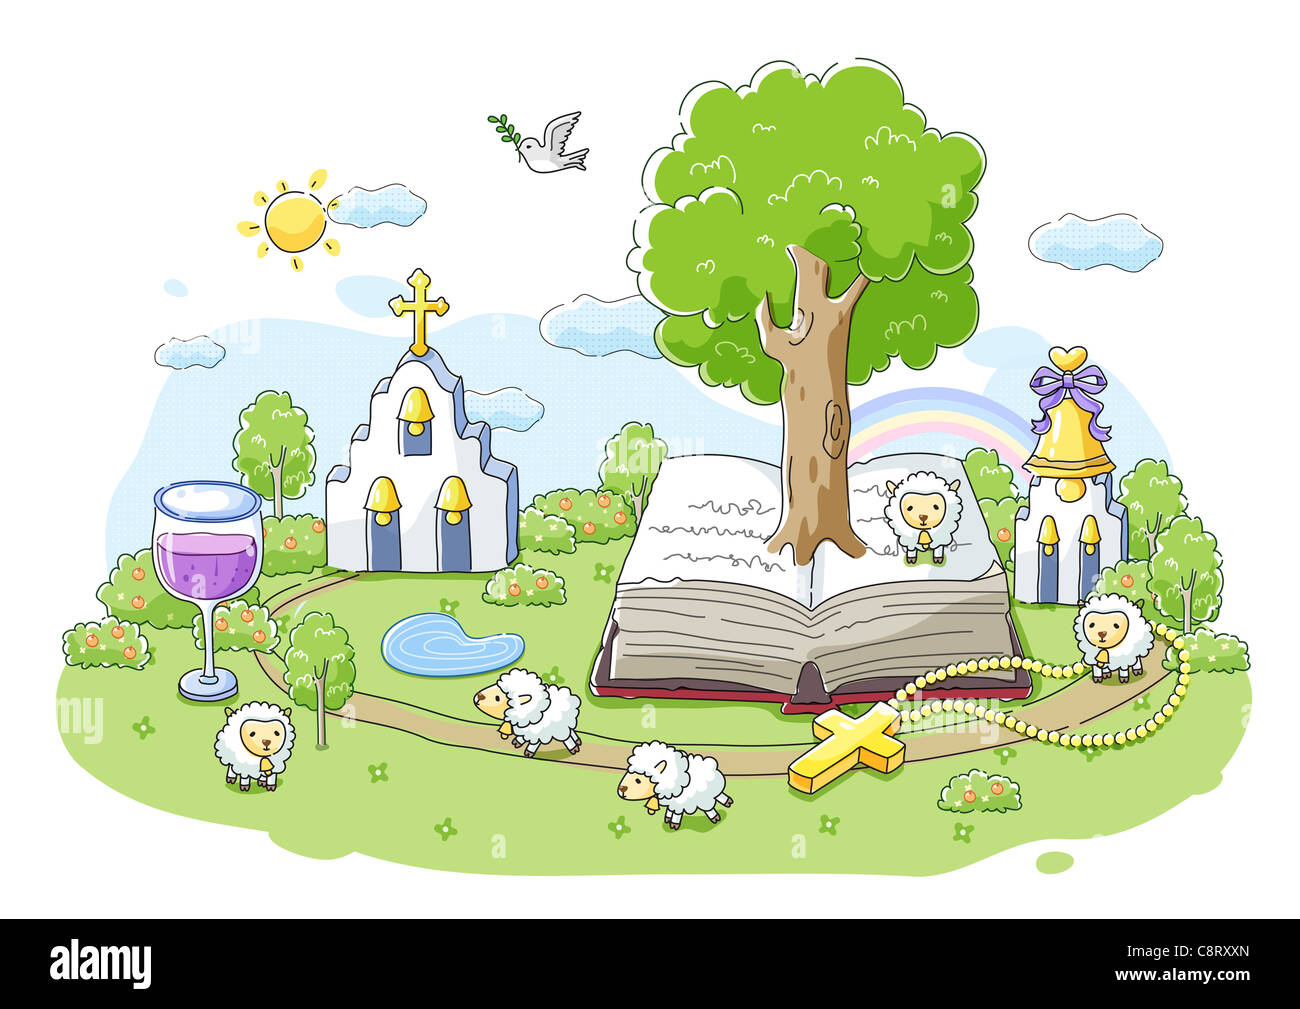 Concept of church and bible - Stock Image